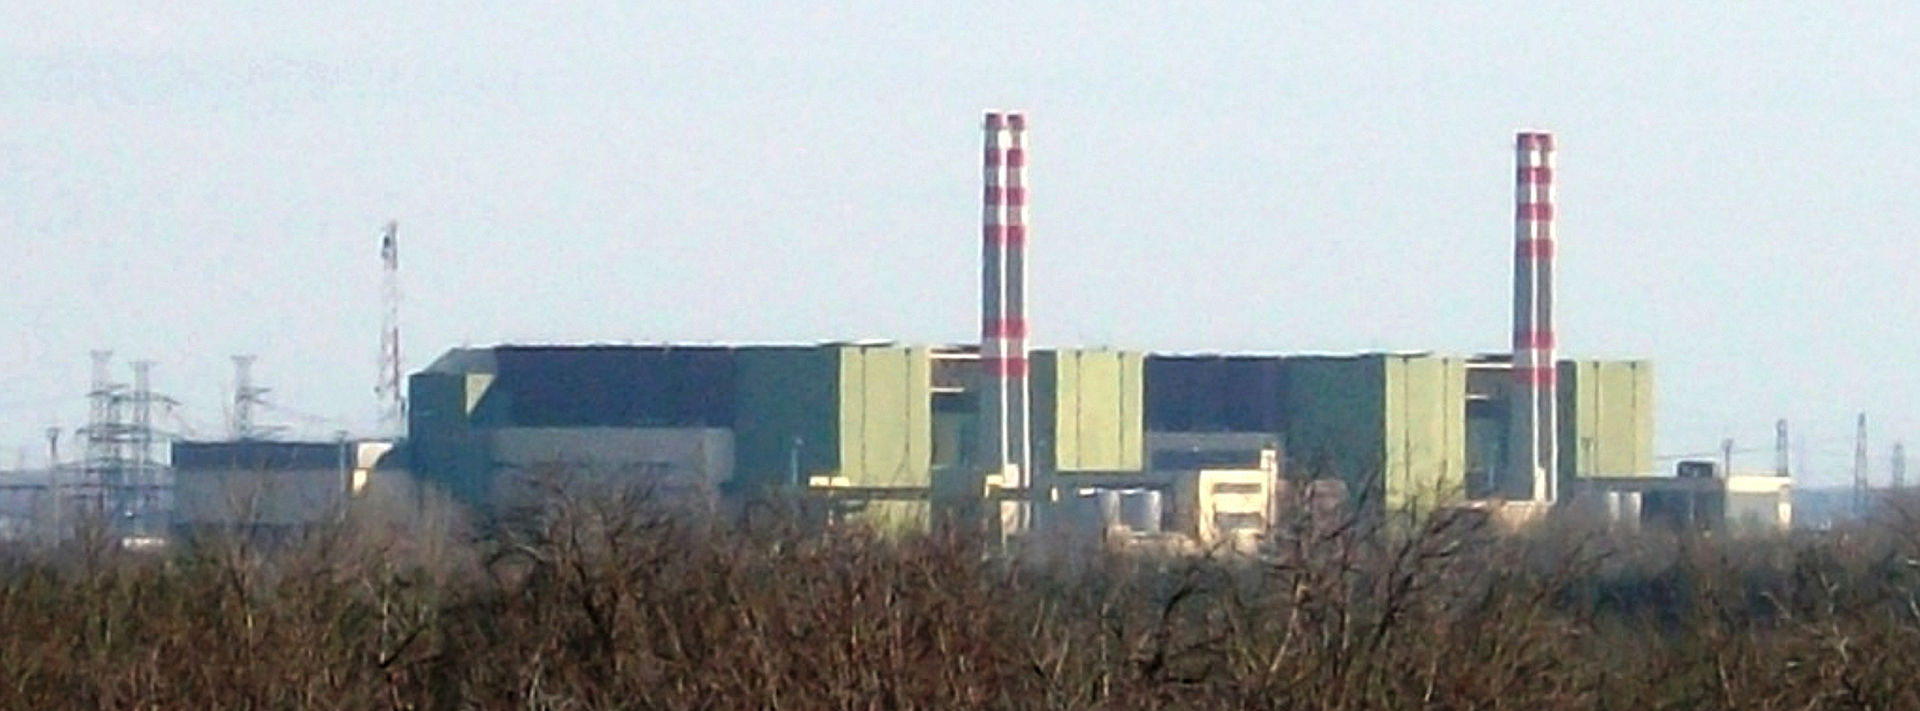 Nuclear power plant PAKS in Hungary